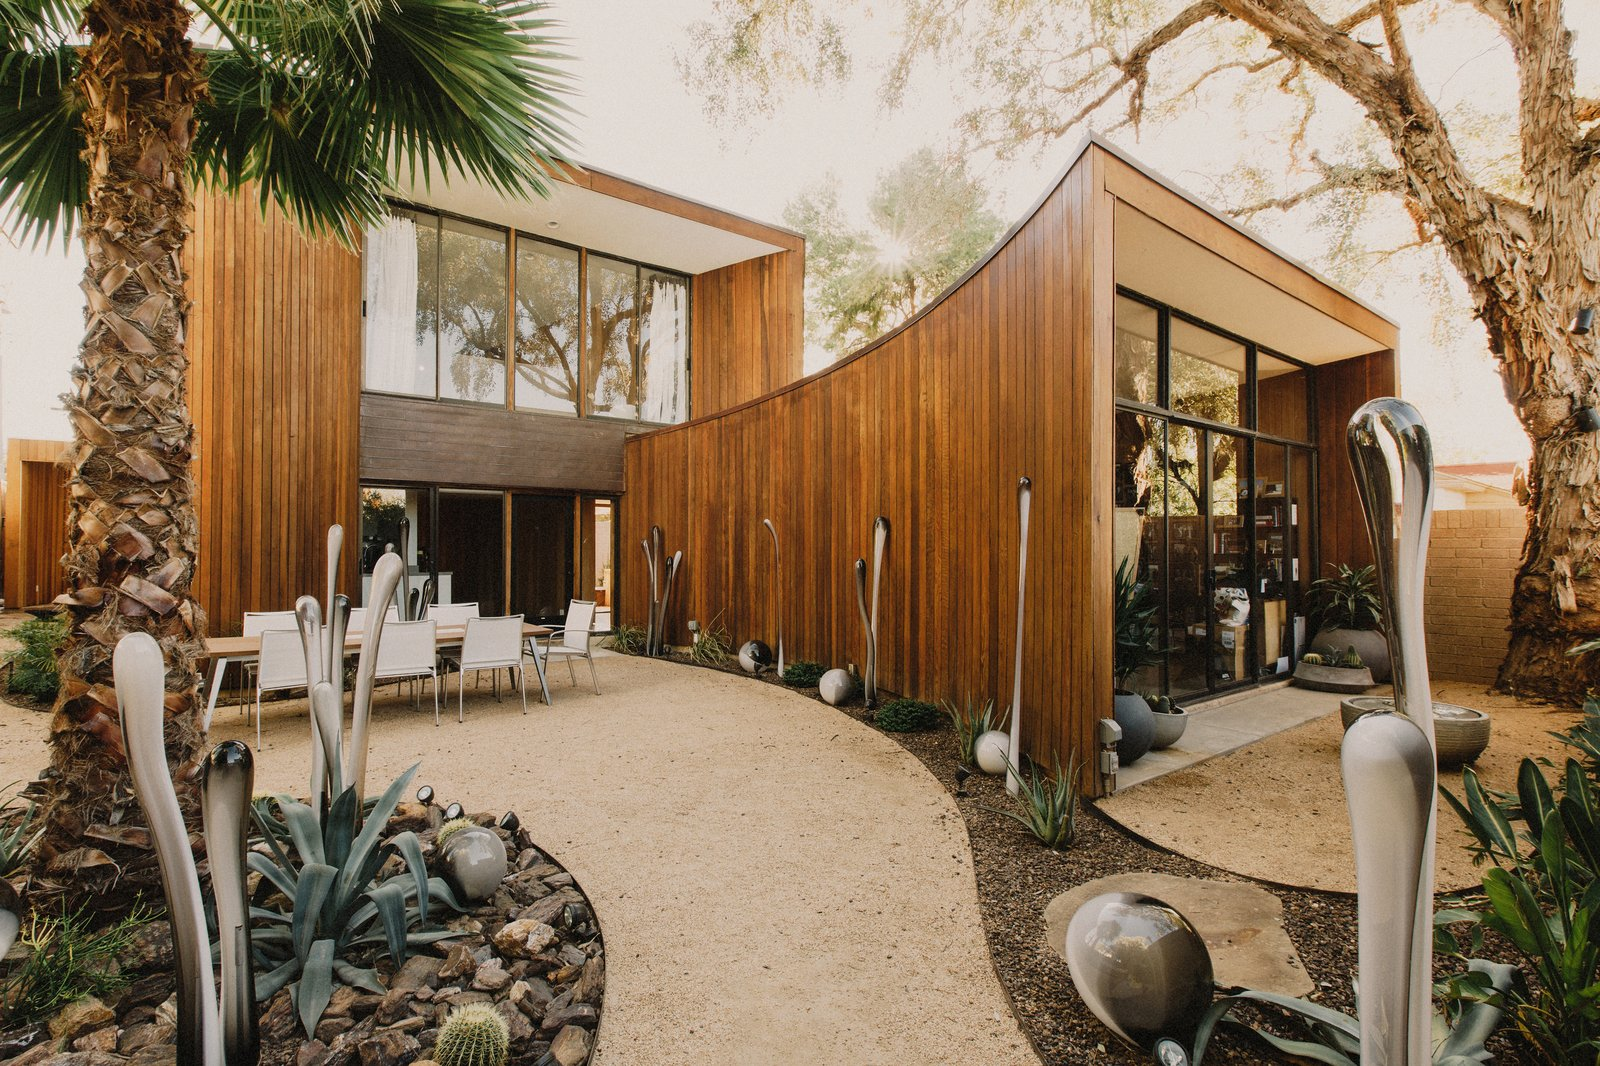 Custom whimsical glass sculptures created by Rainier Glass Studio and succulents highlight the courtyard of this curved house in central Phoenix